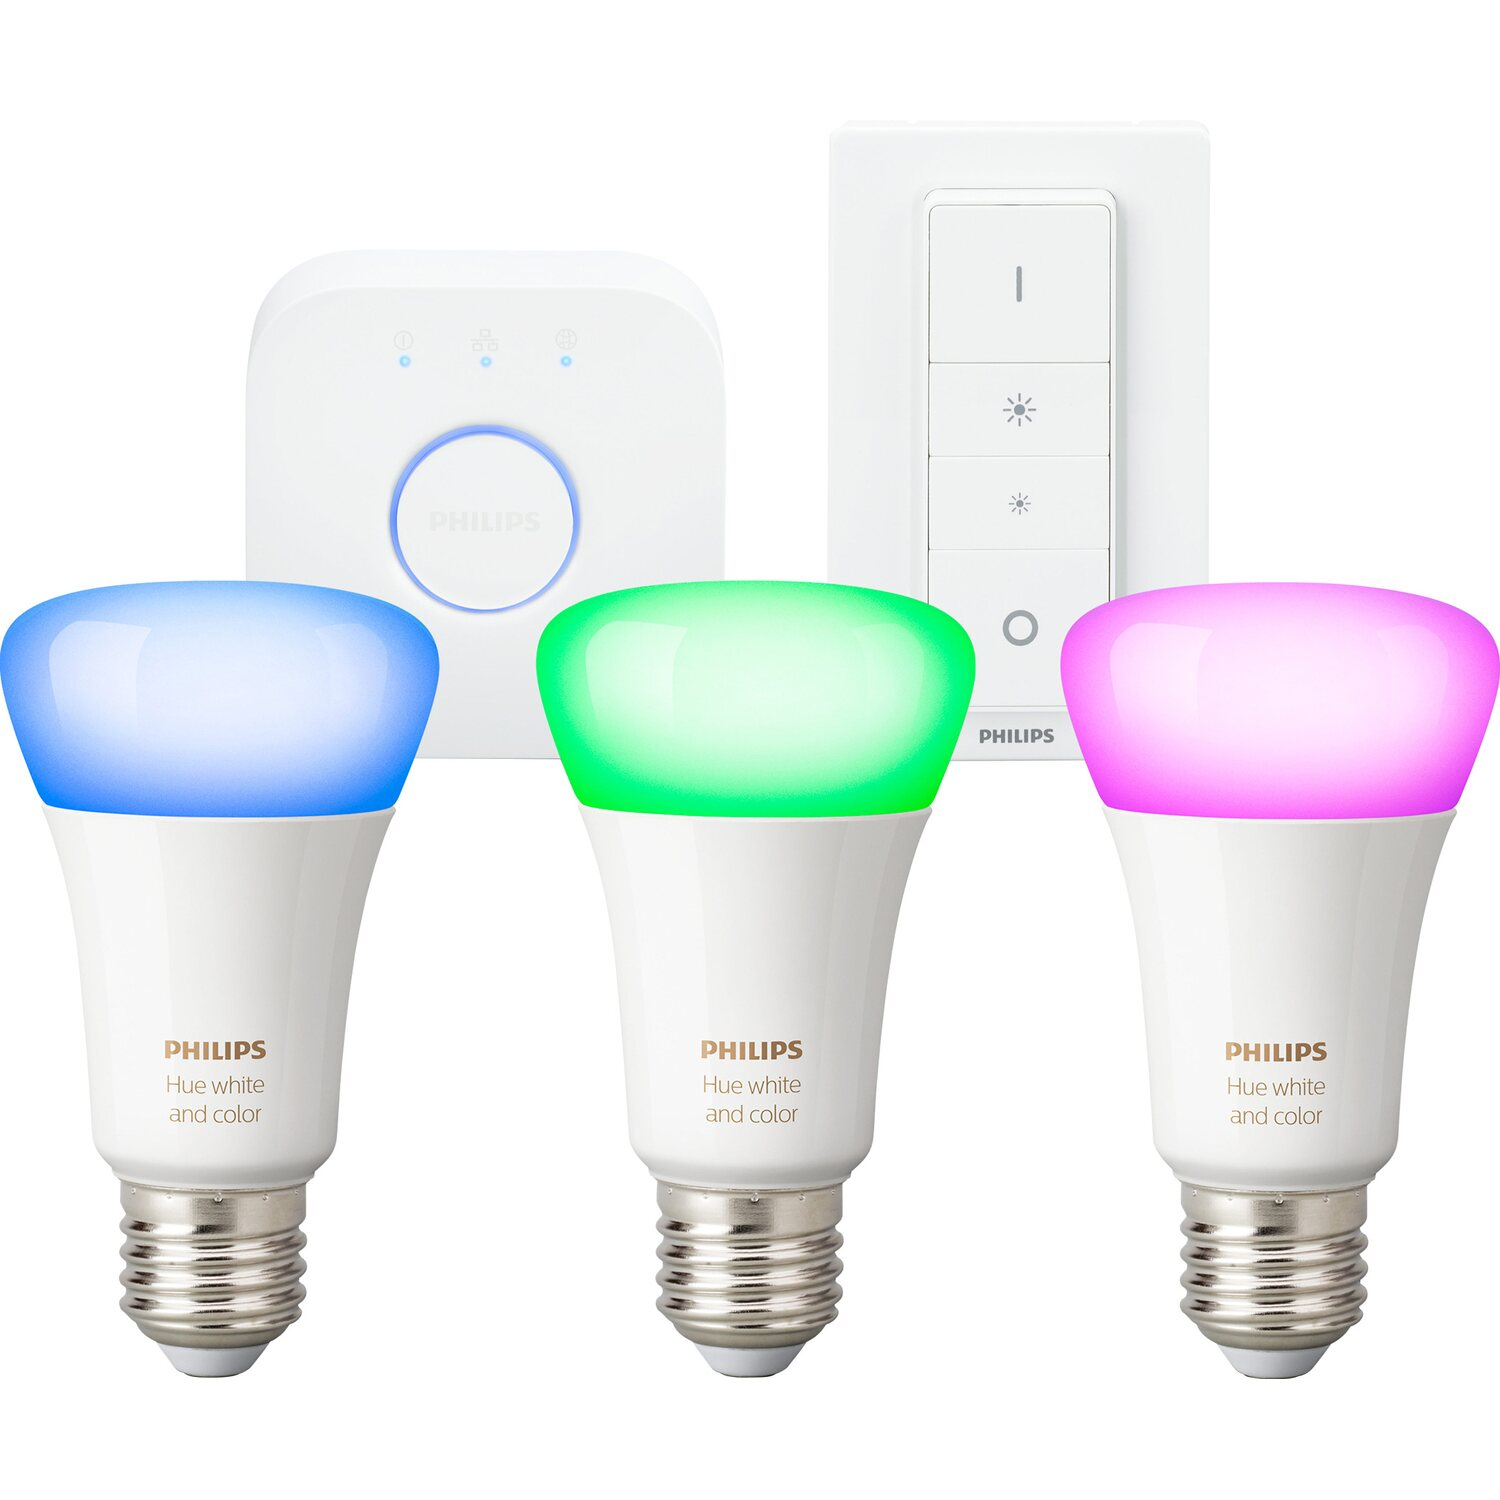 Philips Hue White & Color Ambiance E27 LED Lampe Starter Set inkl. Dimmschalter